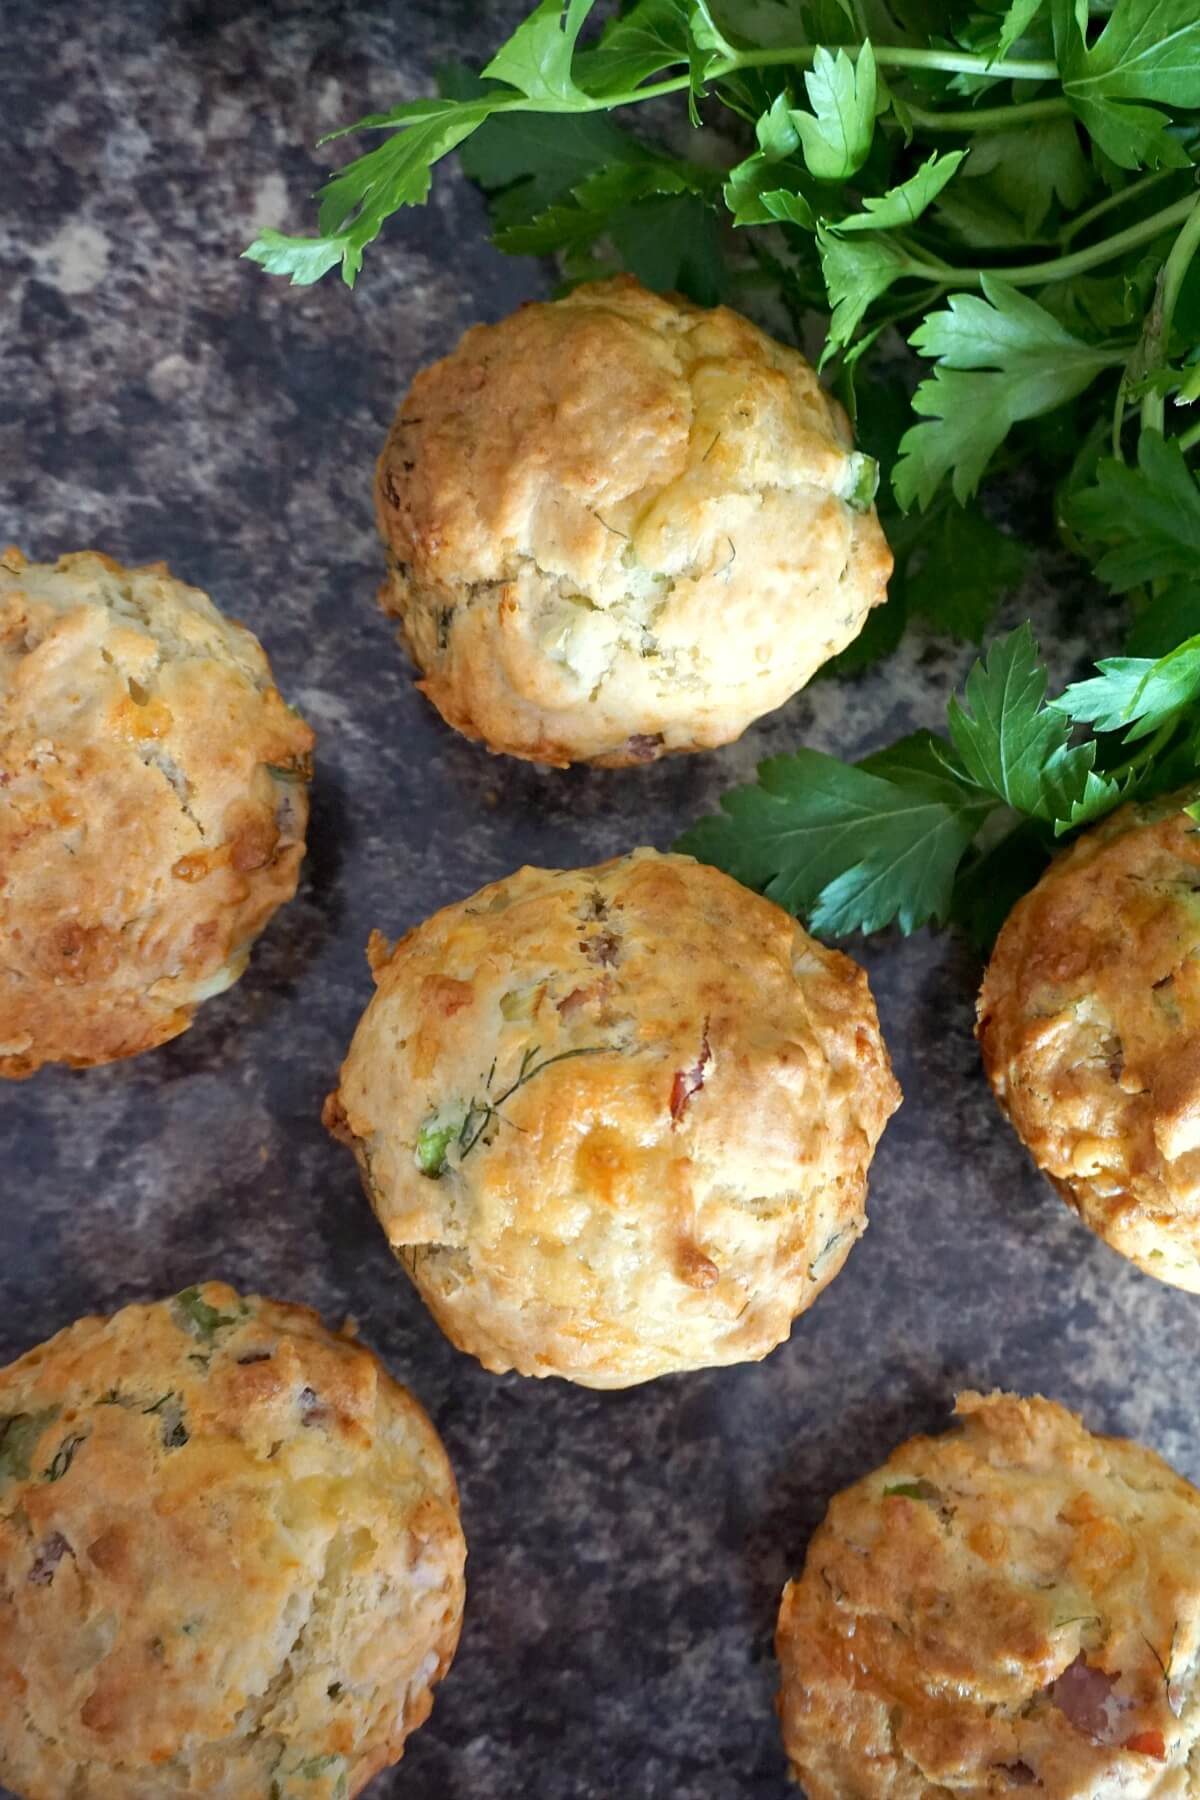 Overhead shoot of 6 muffins and fresh parsley